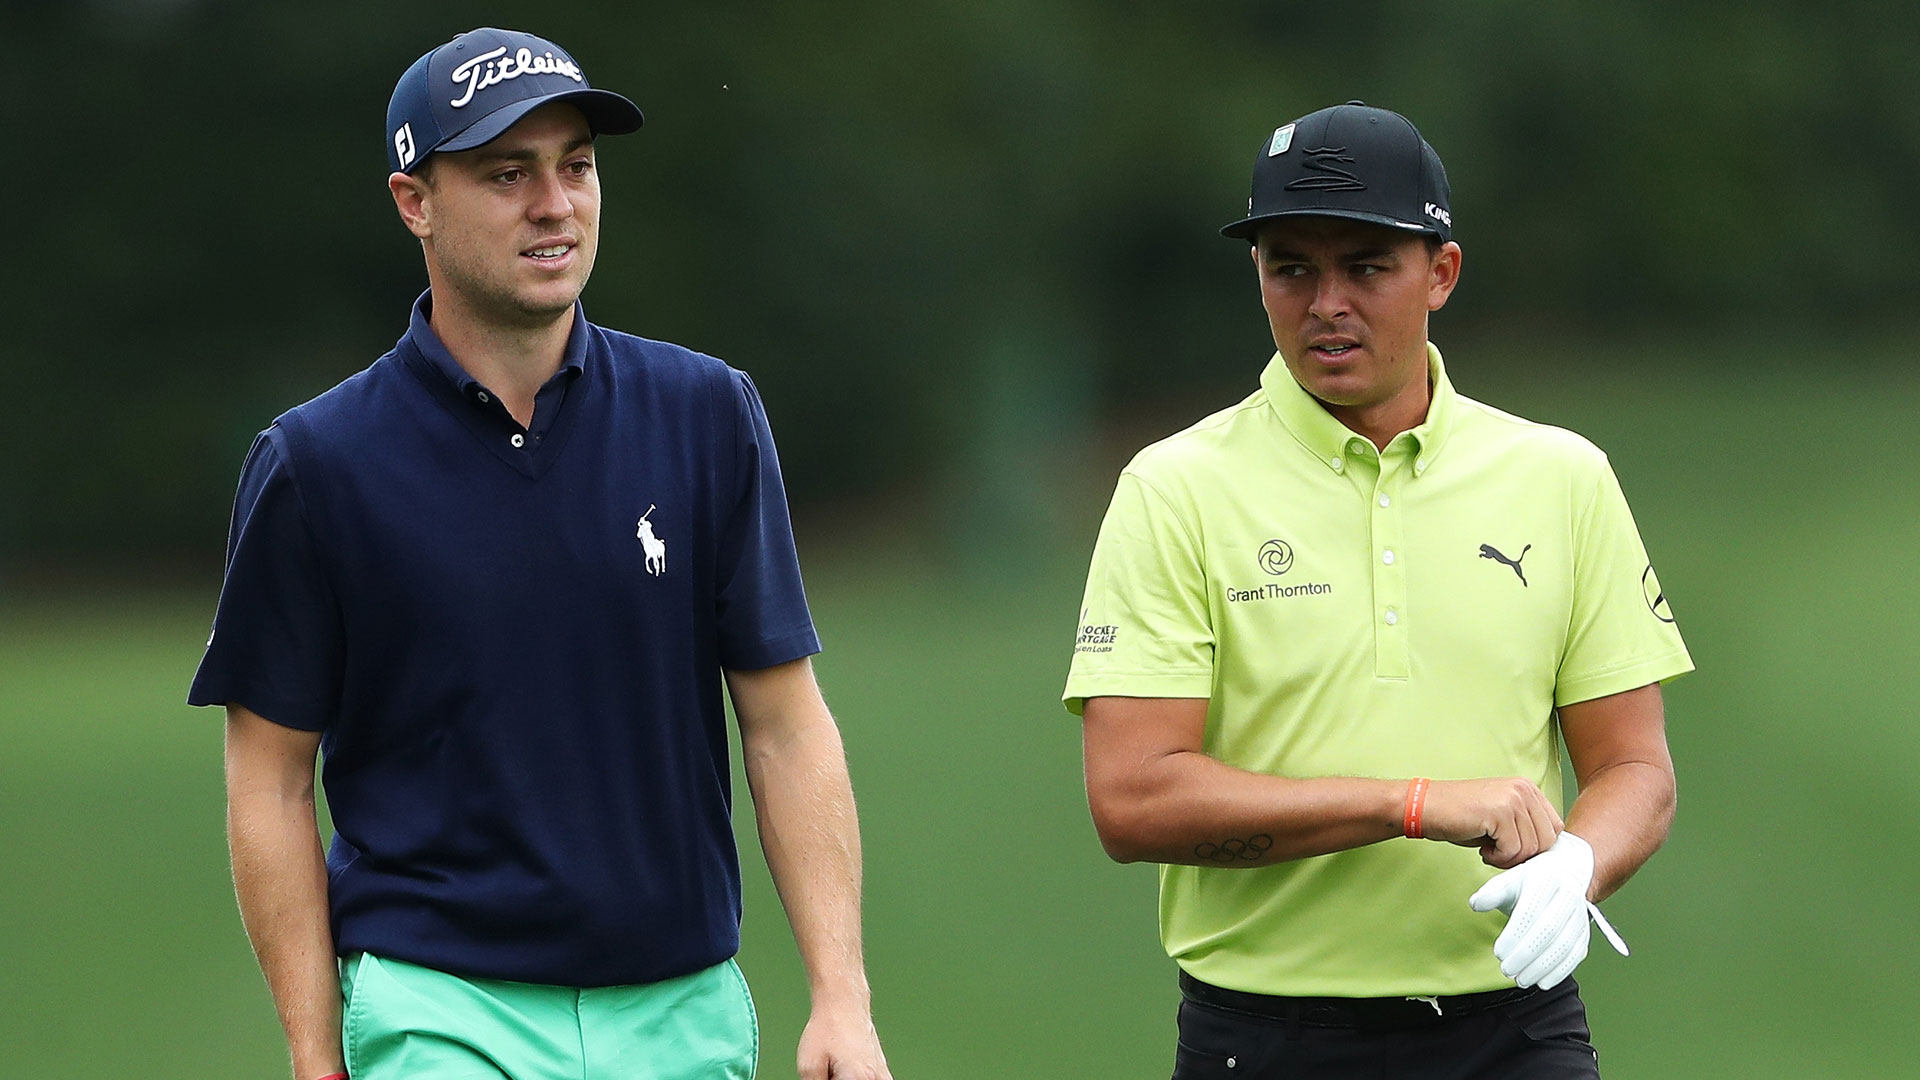 Thomas Improves Putting With Fowlers Backup Golf News Newslocker